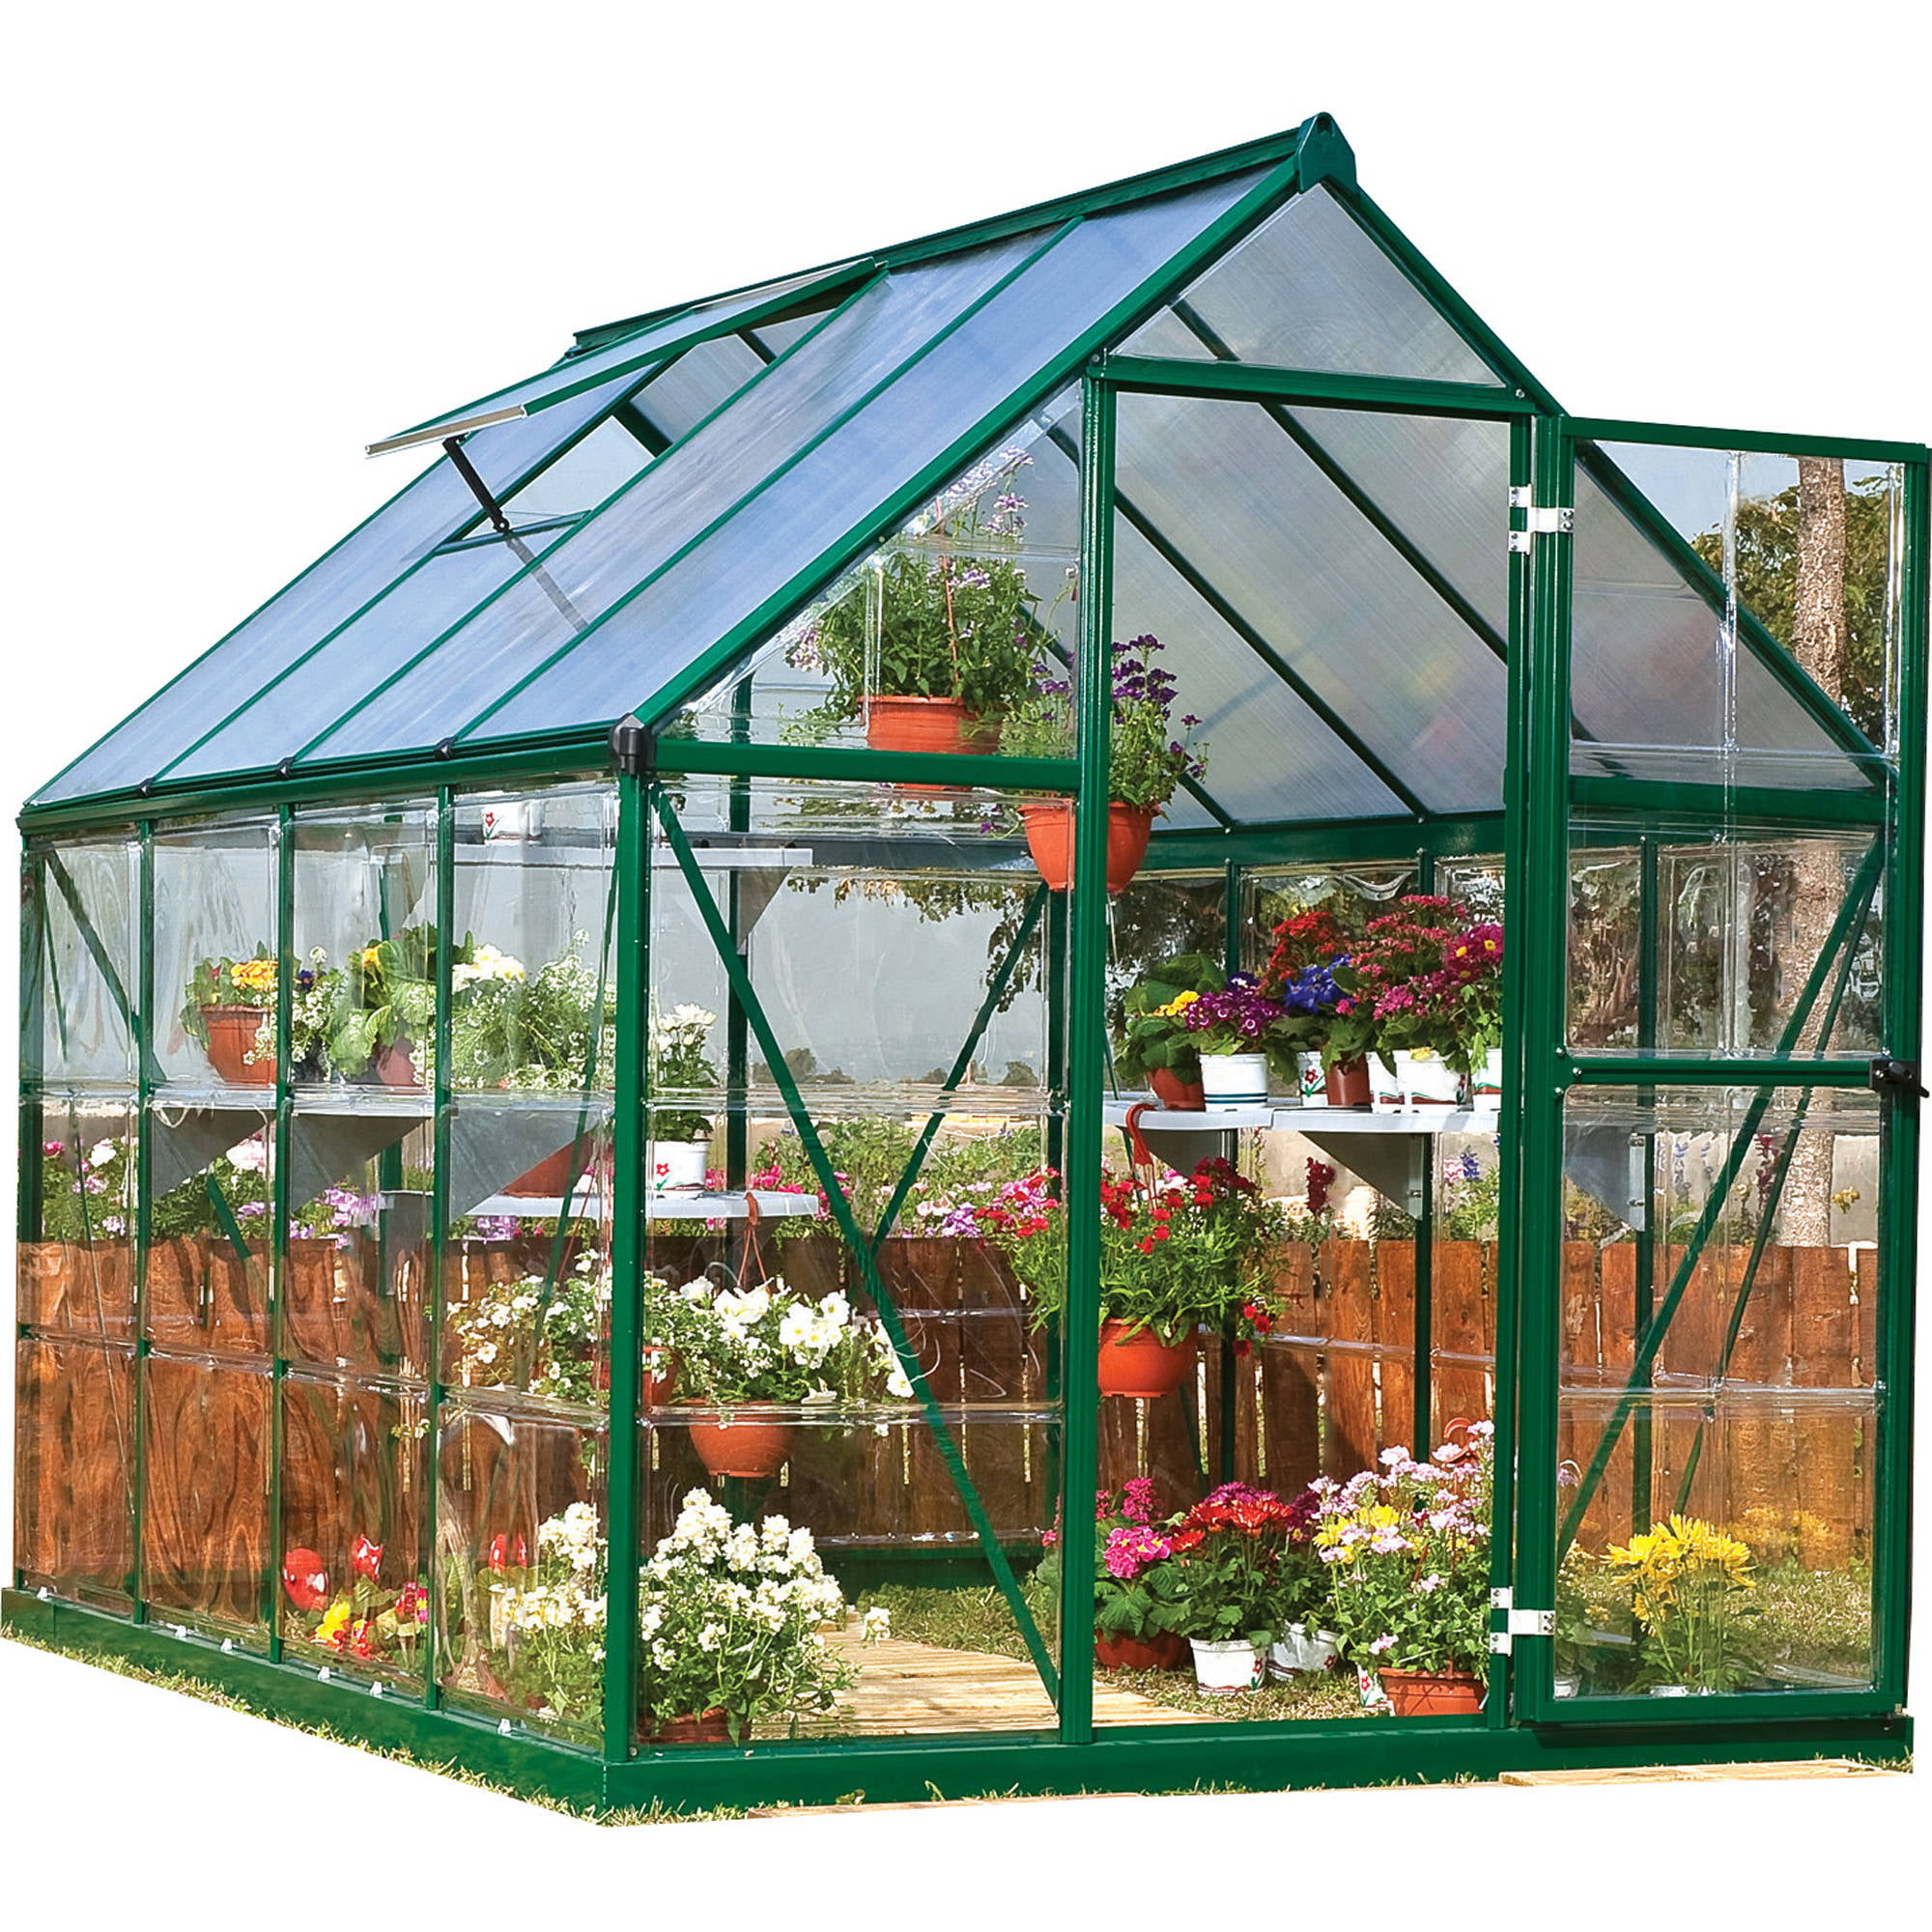 Hybrid Greenhouse, 6' x 8', Green by Palram